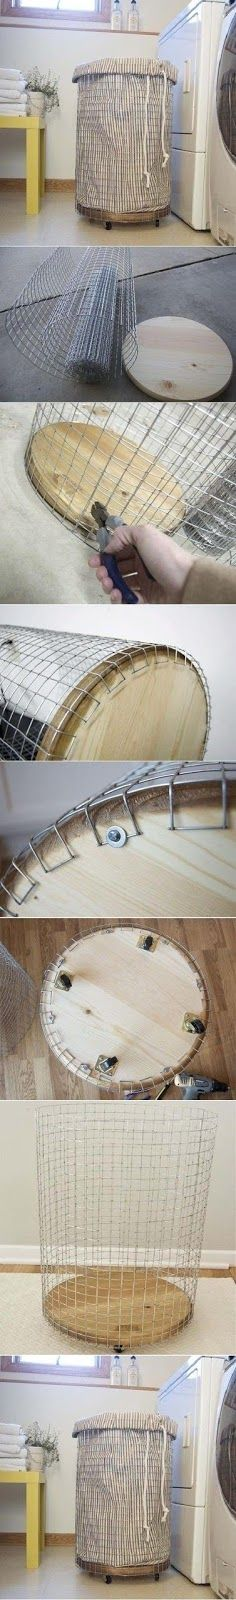 303Pixels: DIY Laundry Bin Photo Tutorial - this would make a great recycling bin. If using for laundry, make sure the wire ends are not pro...